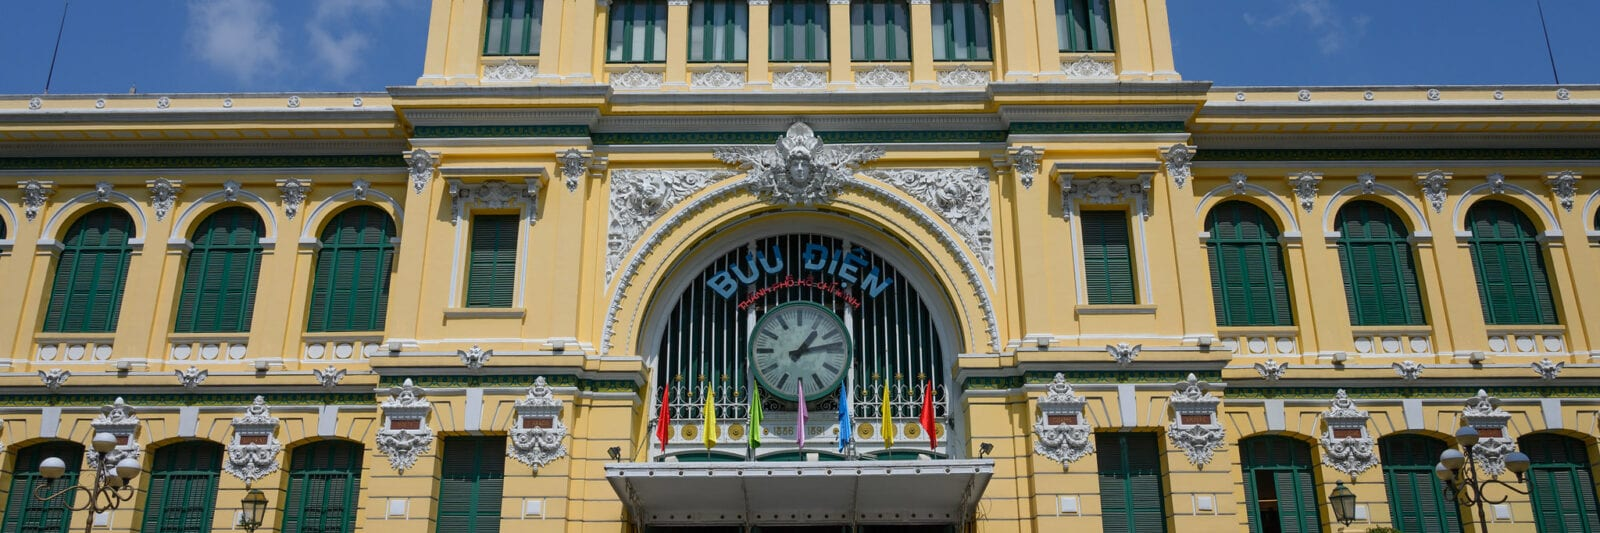 Image of the Saigon Central Post Office in Vietnam